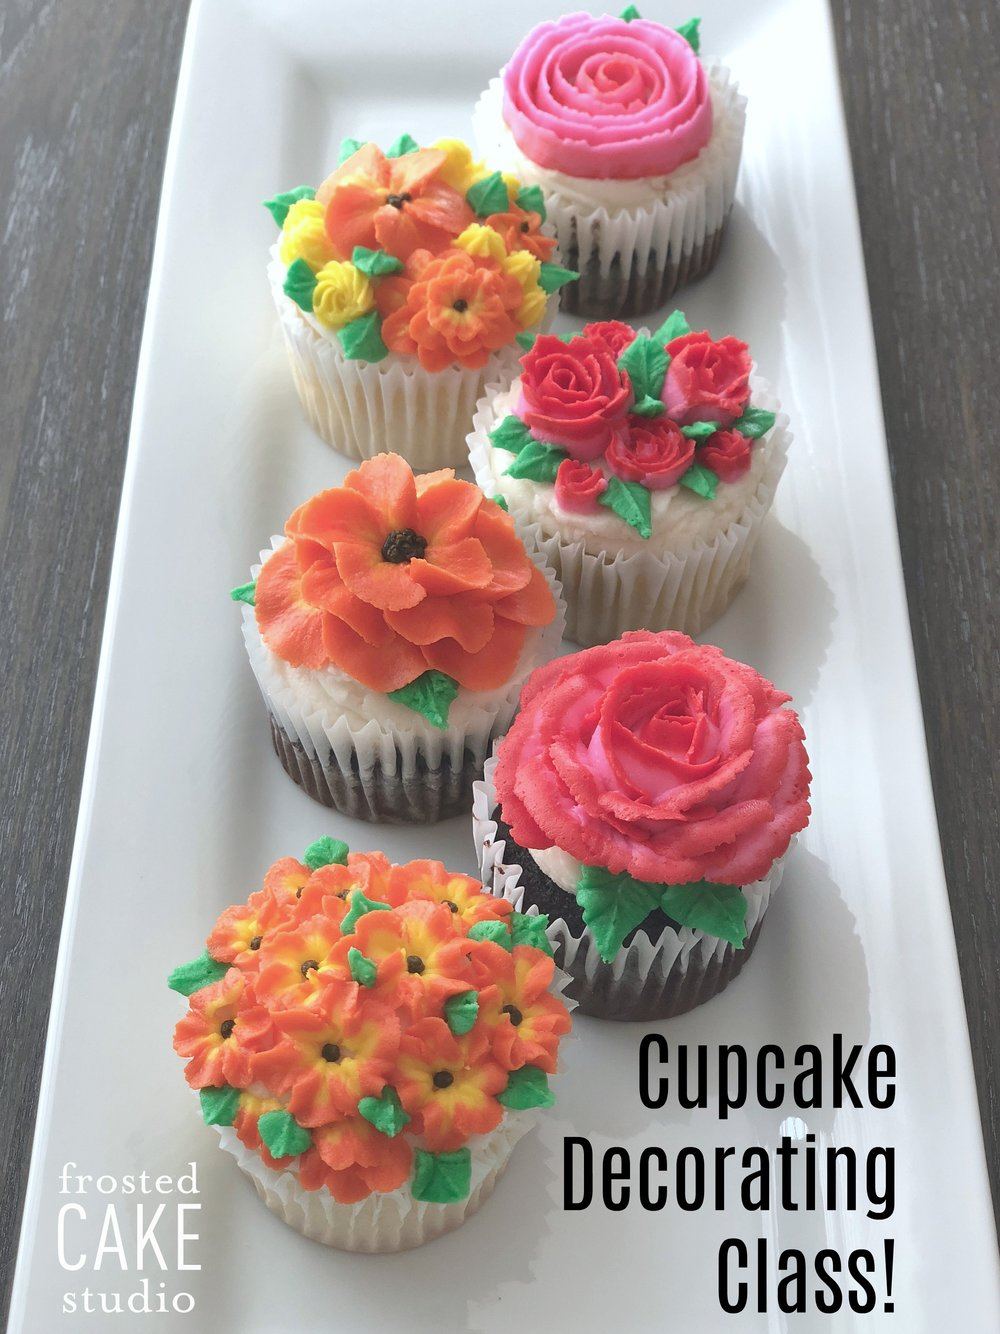 FCS Buttercream Piped Flowers Cupcake Decorating Class.jpg